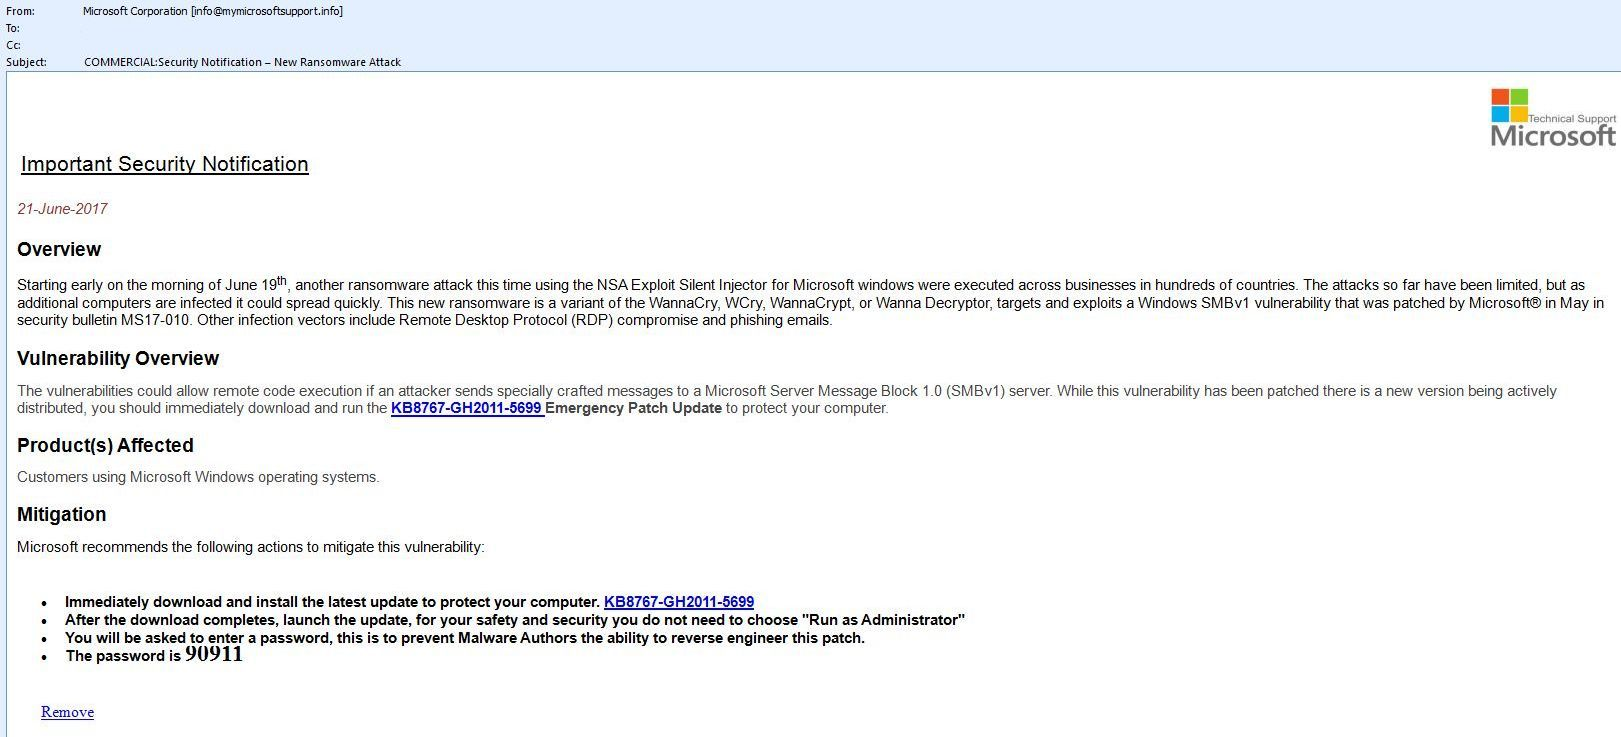 microsoft security alert email